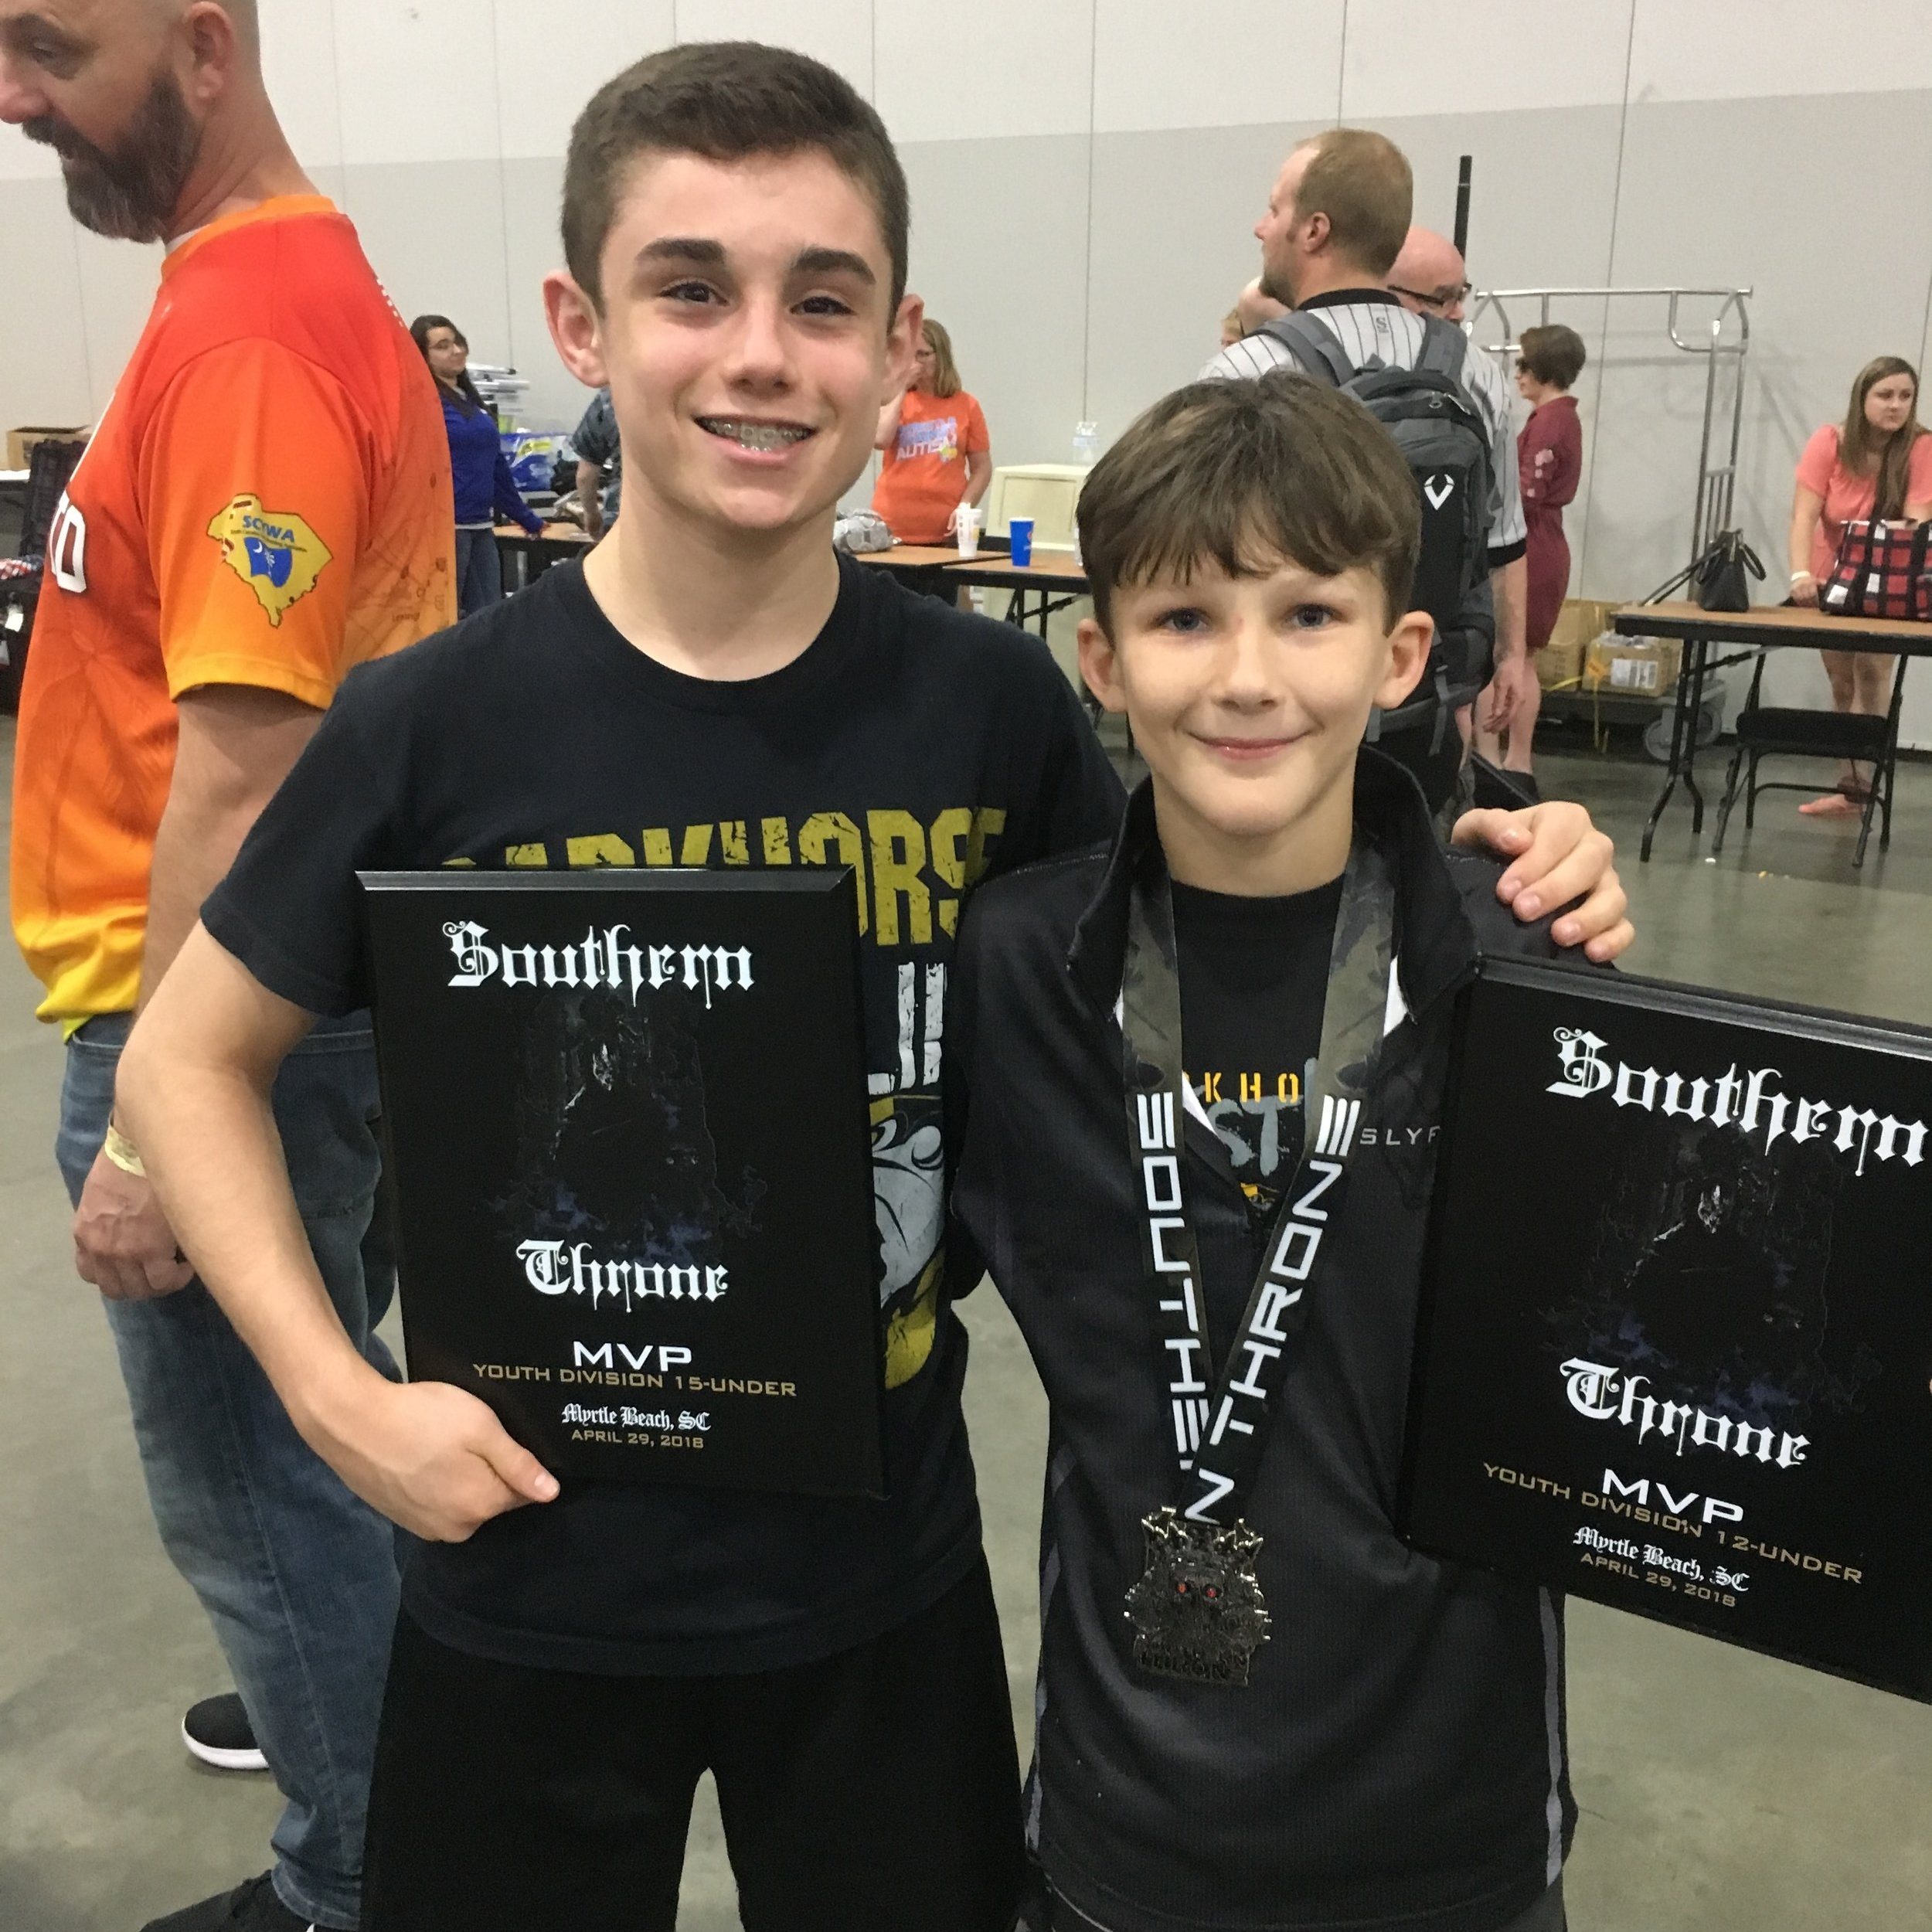 Congratulations to Kyle Montaperto (15U) and Zeno Moore (12U) - each earned Dual Tournament MVP honors at the 2018 NUWAY Southern Throne tournament in Myrtle Beach!